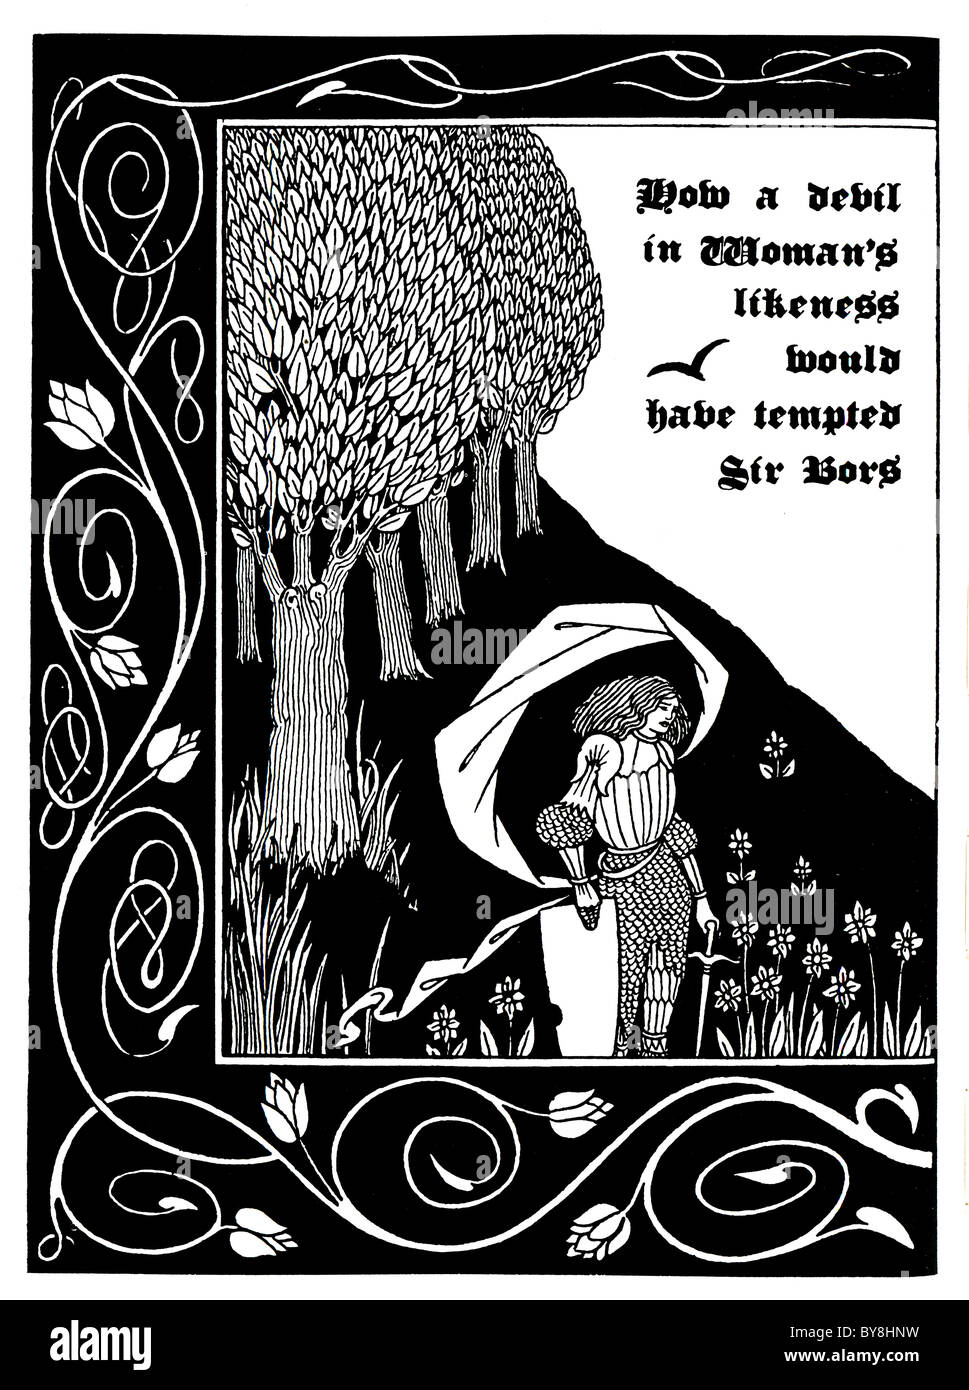 Aubrey Beardsley - - The Death of Arthur 1893 - Dent Publishing ' How a Devil in Woman's likeness would - Stock Image